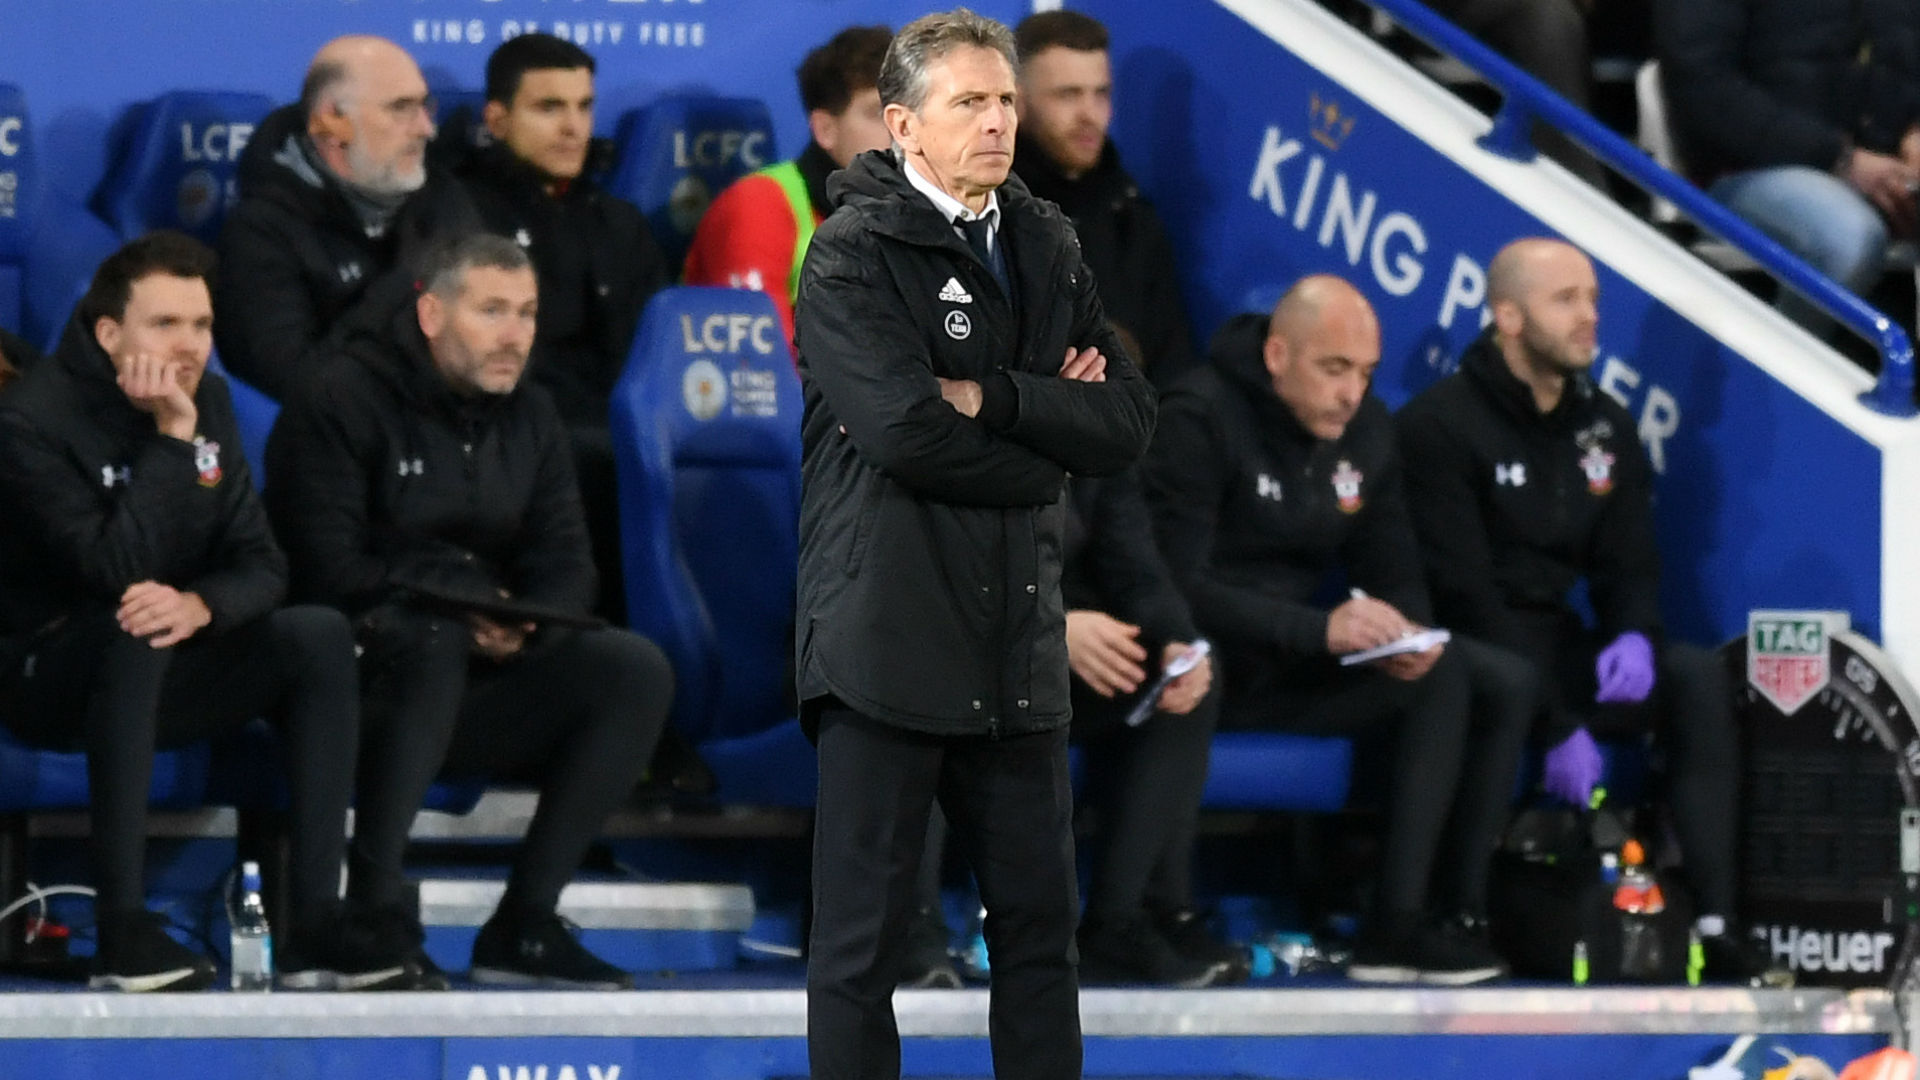 I'm just focused and concentrating on my team - Puel stays calm amid growing pressure